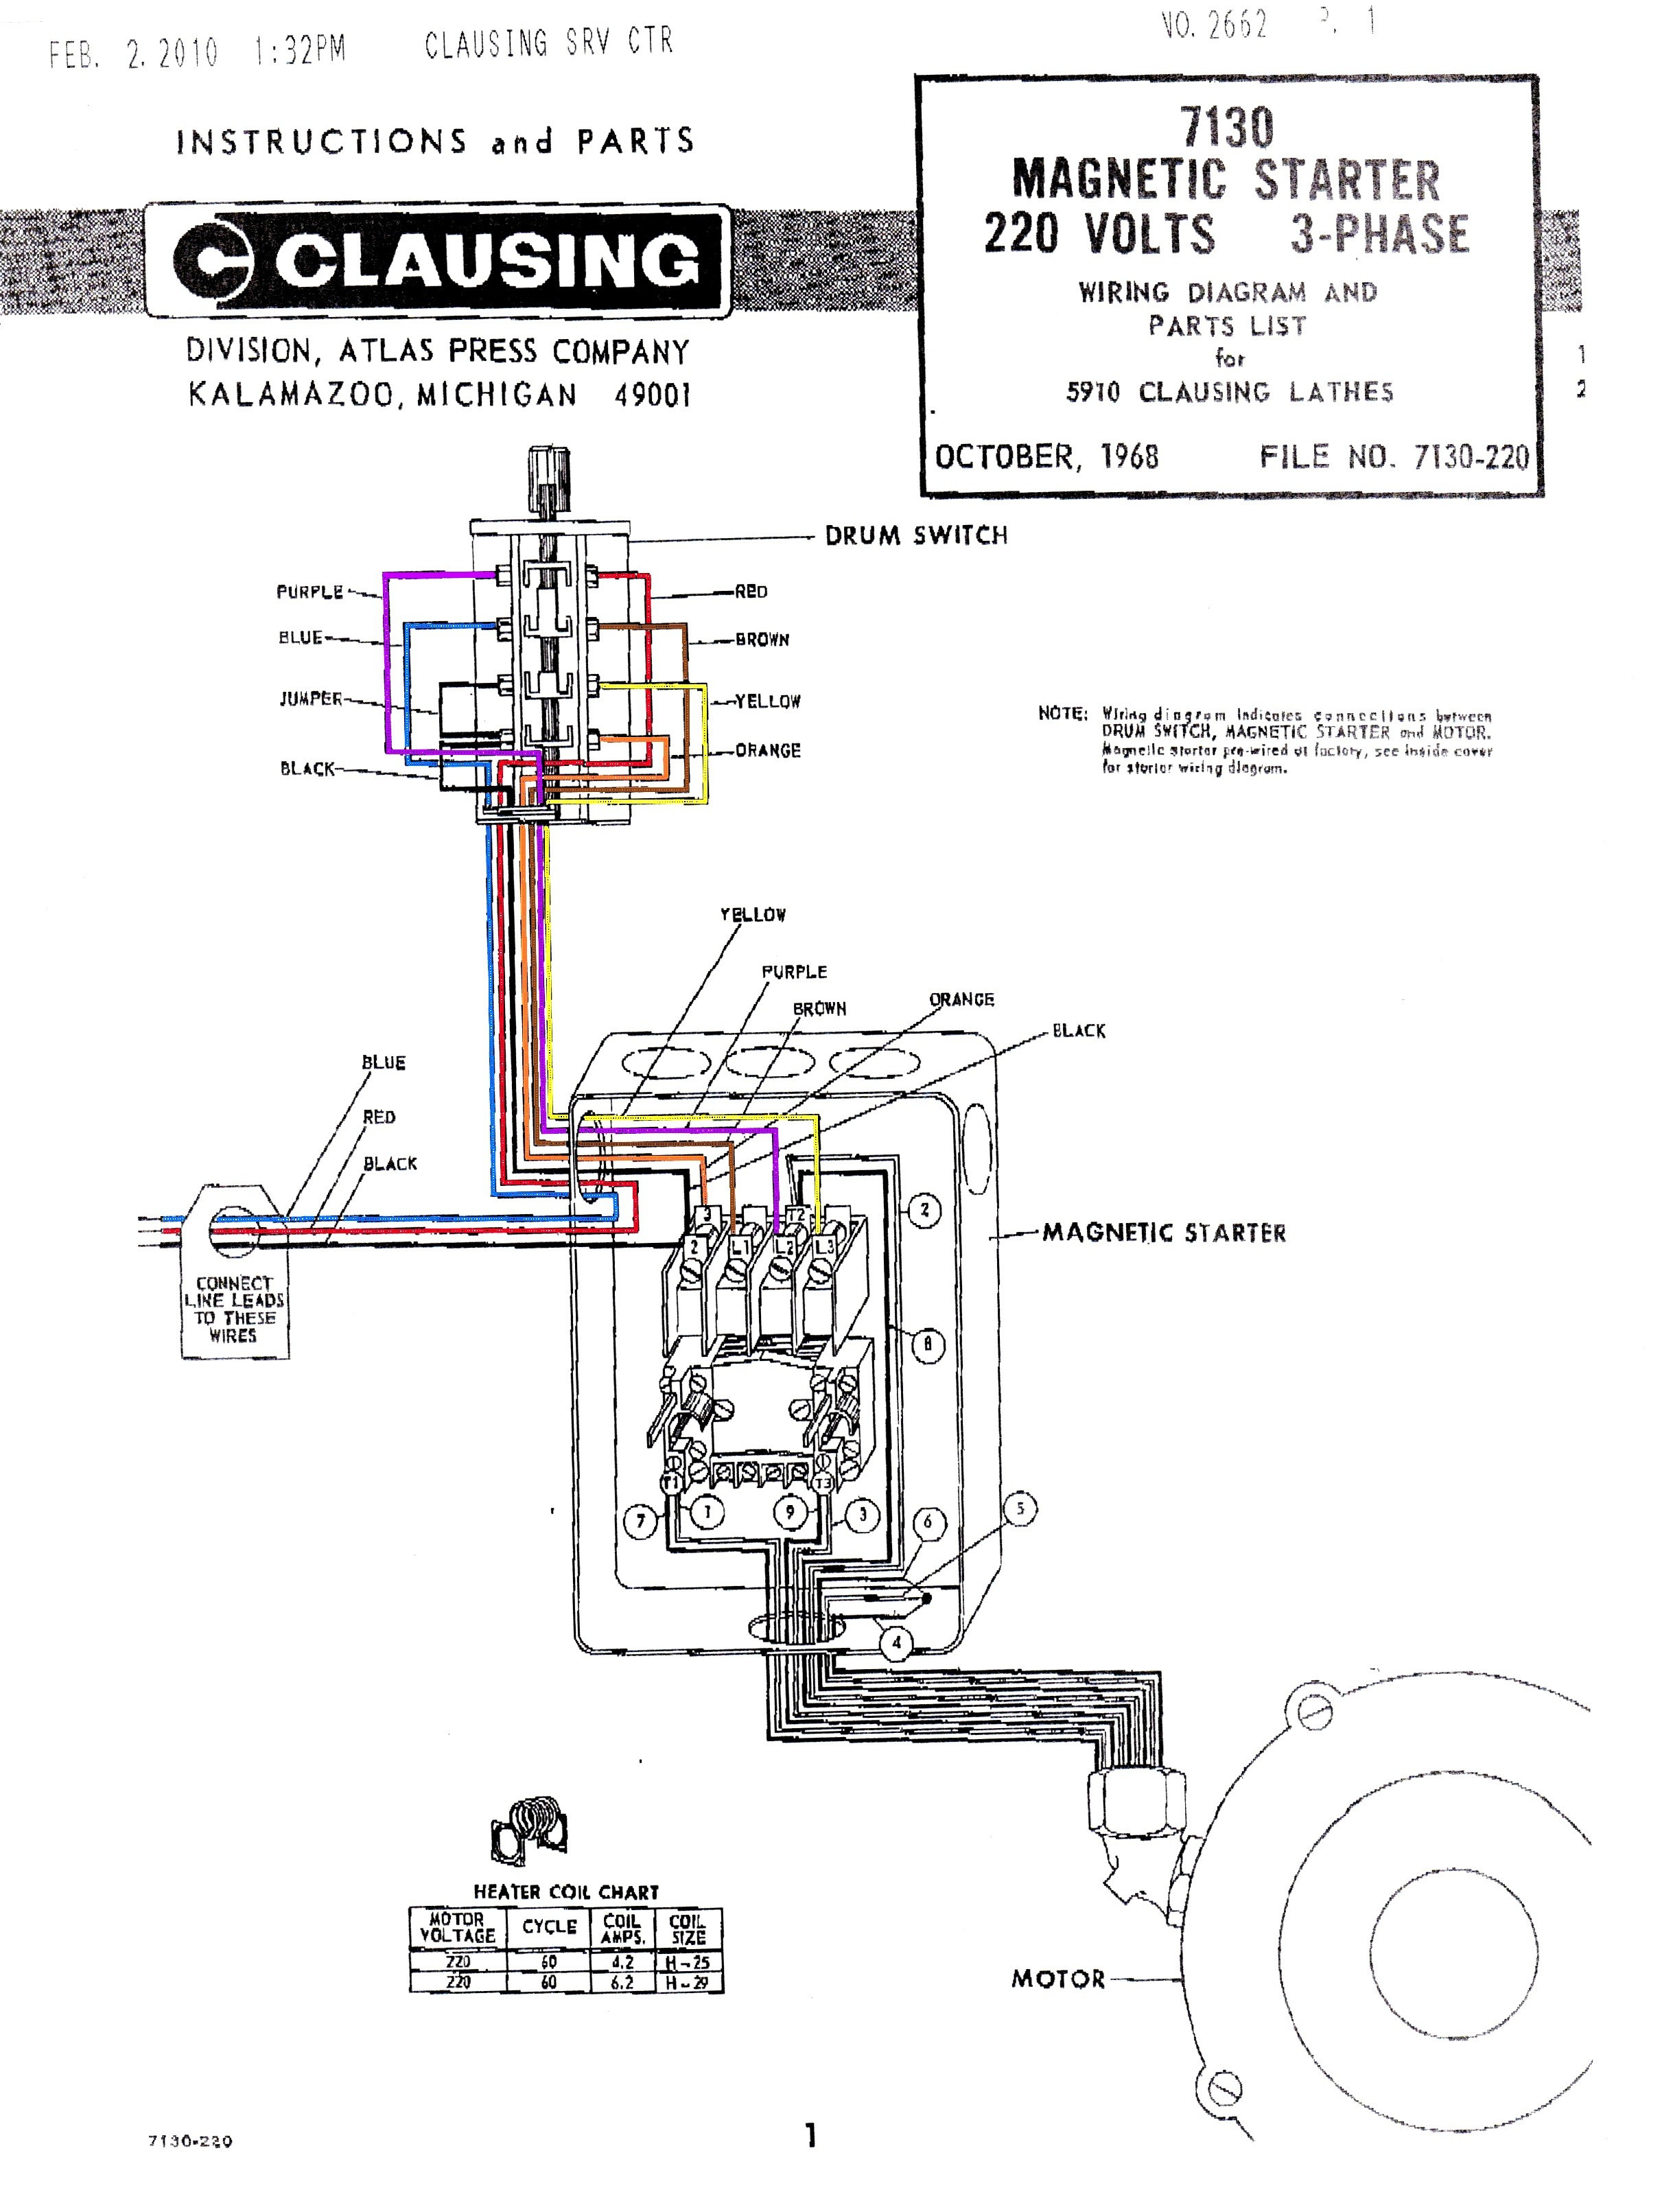 220 Volt Wiring Diagram Air Compressor